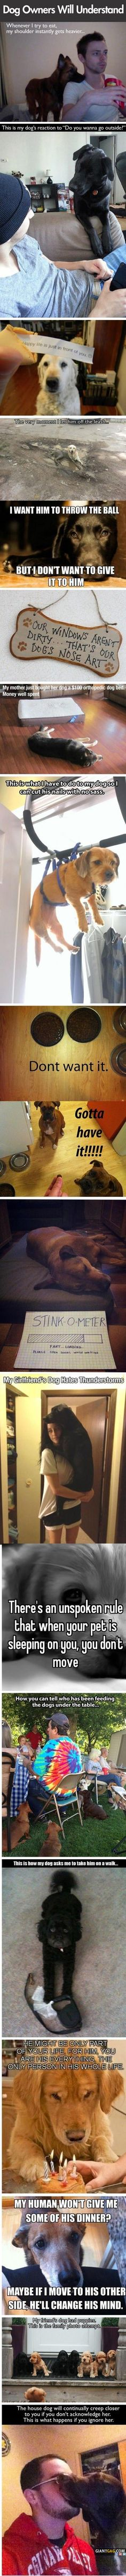 Images of the week, 90 images. Dog Owners Will Understand (Compilation)